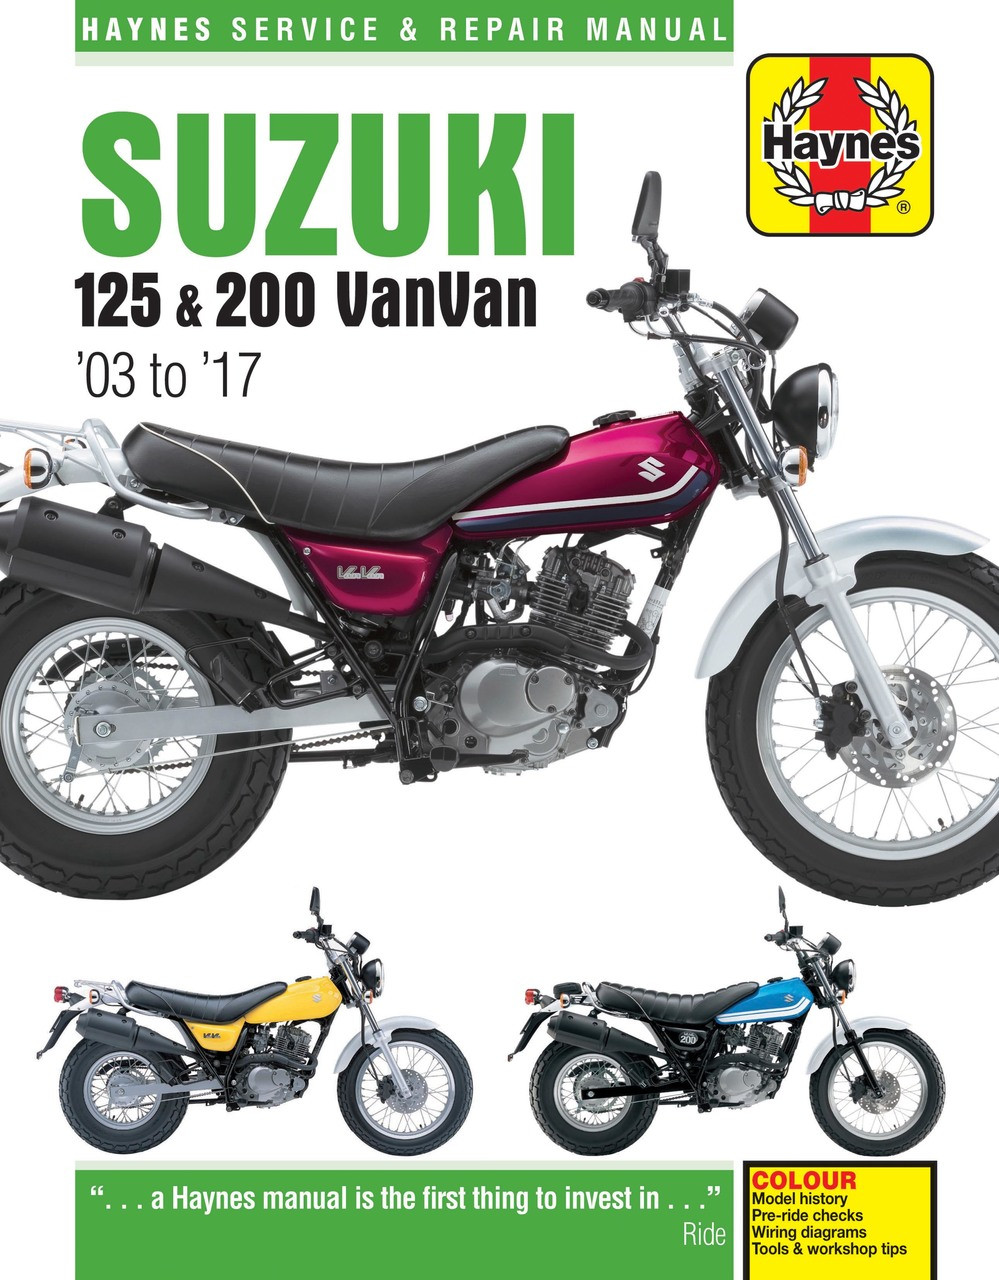 medium resolution of suzuki rv125 rv200 vanvan 2003 2017 workshop manual suzuki rv 125 wiring diagram suzuki rv 125 wiring diagram